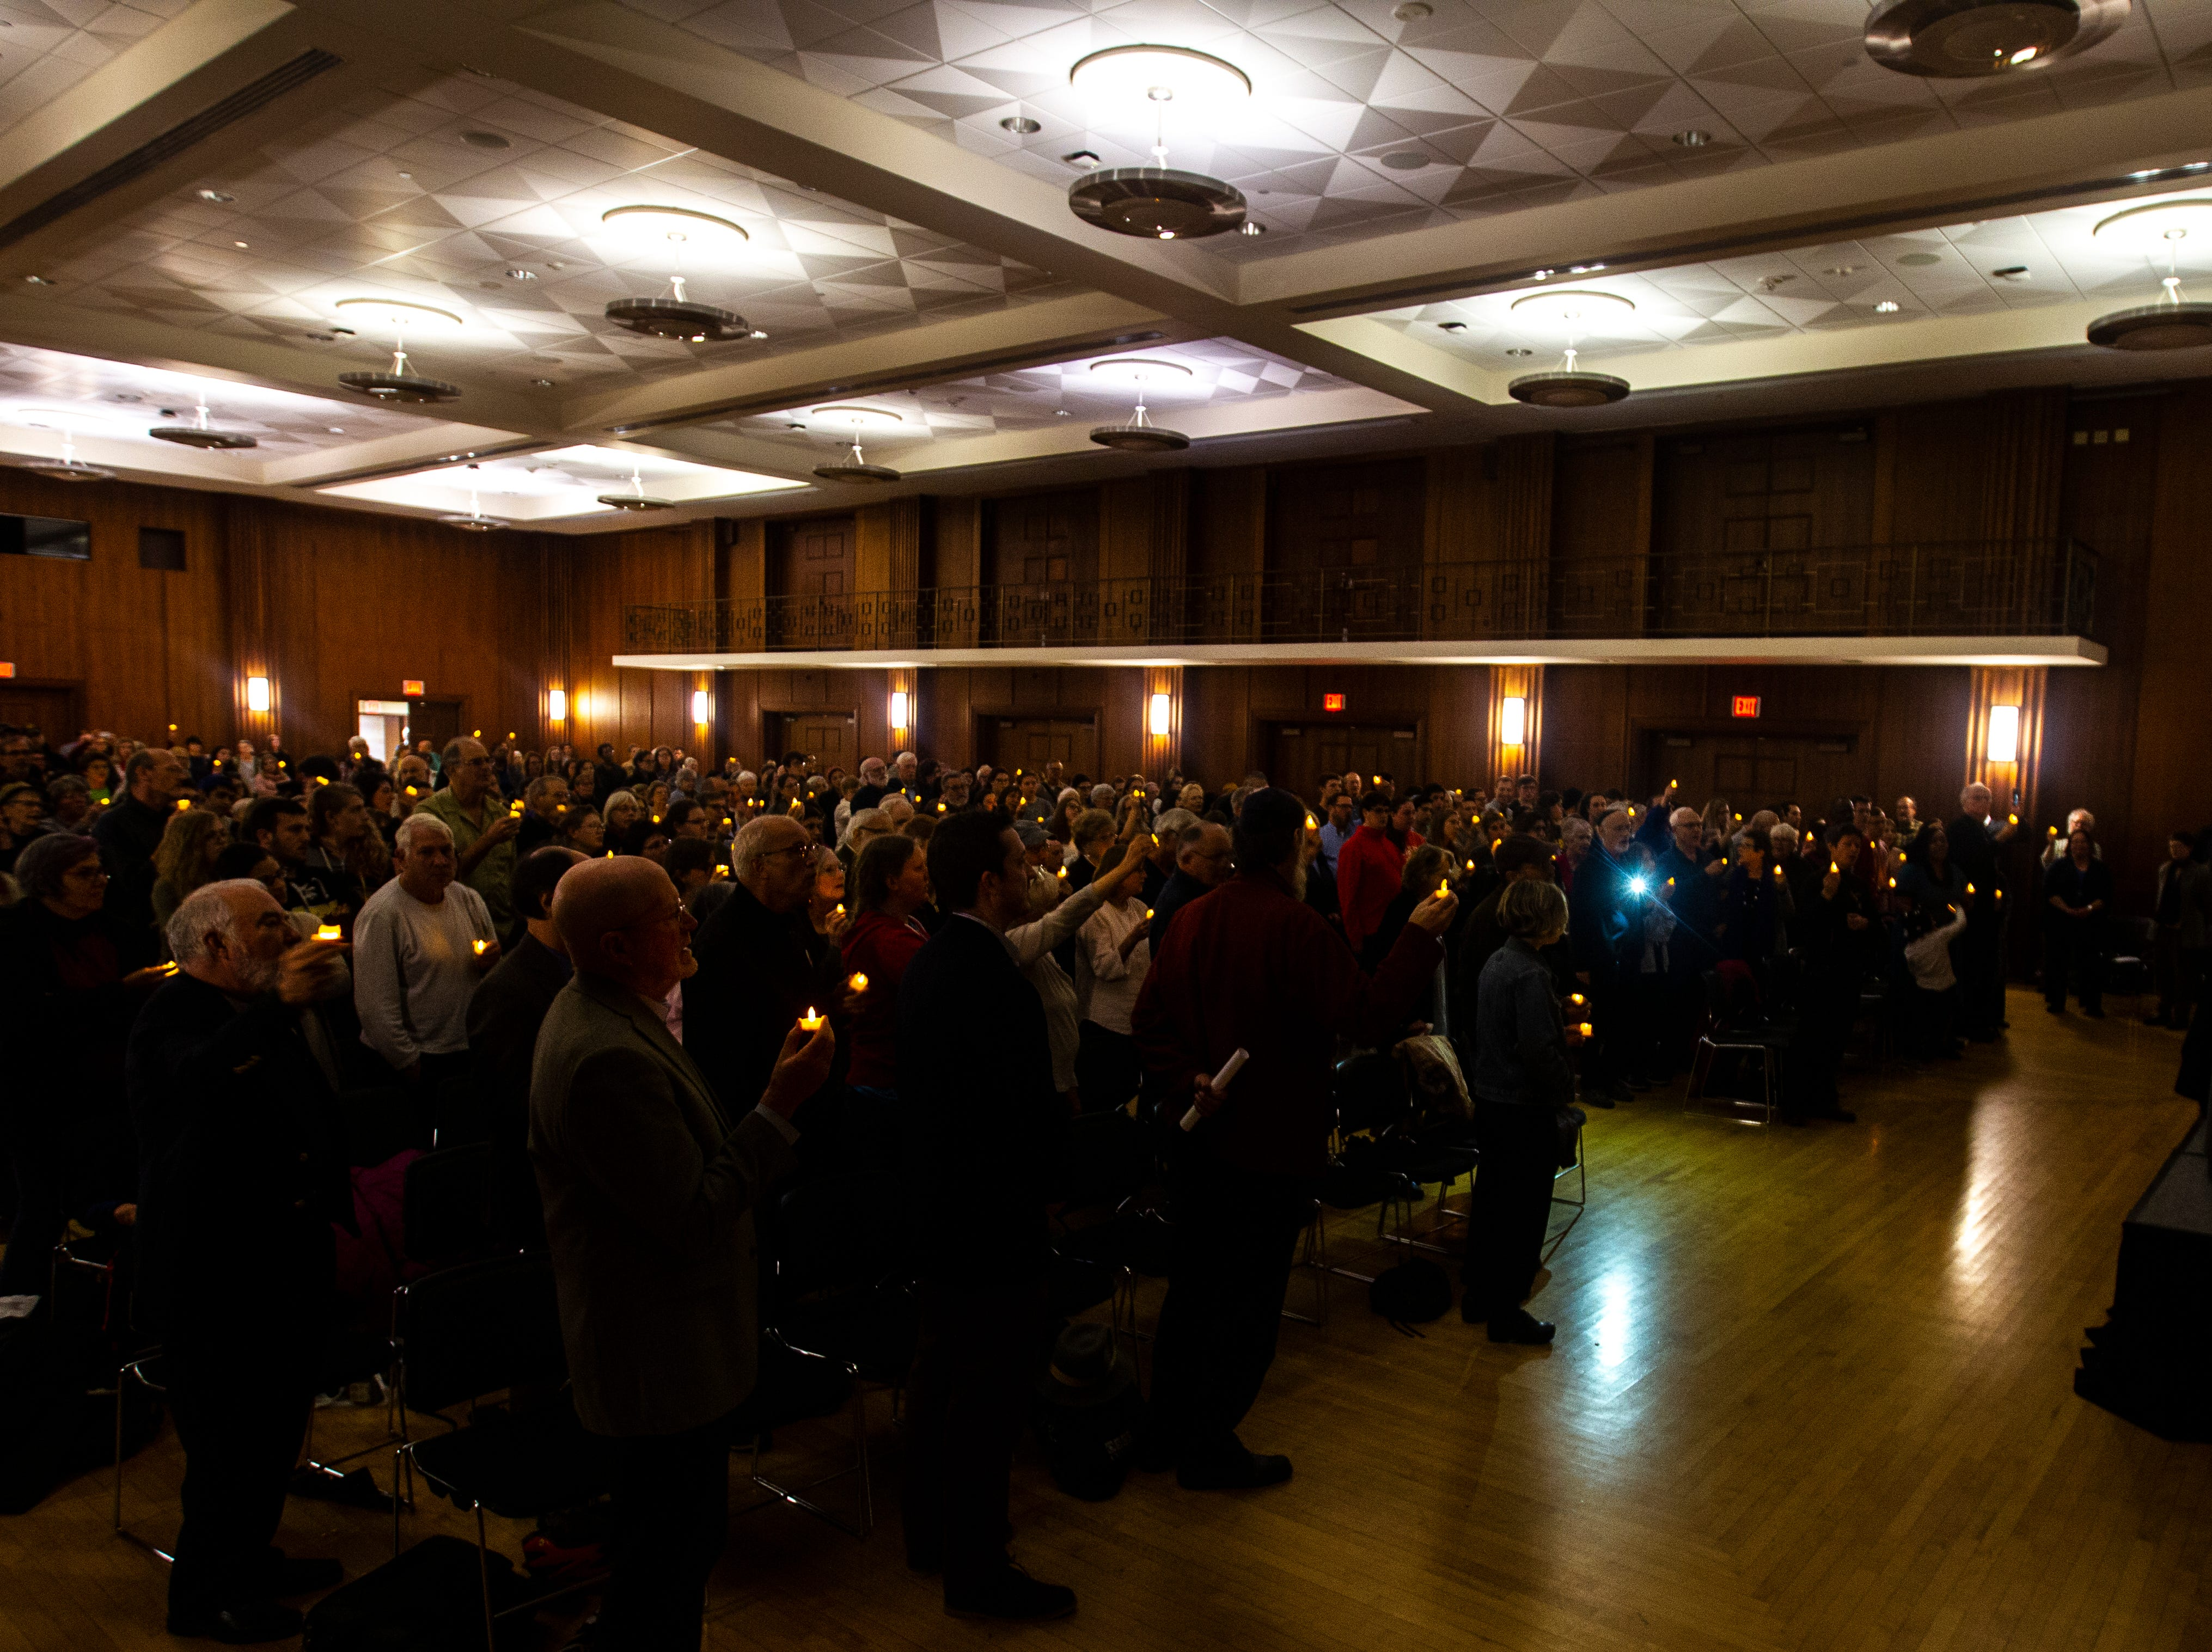 Community members hold candles during a vigil on Tuesday, Oct. 30, 2018, in the Iowa Memorial Union second floor ballroom on Tuesday night, Oct. 30, 2018. The vigil was in response to the Pittsburgh synagogue and Louisville shootings.